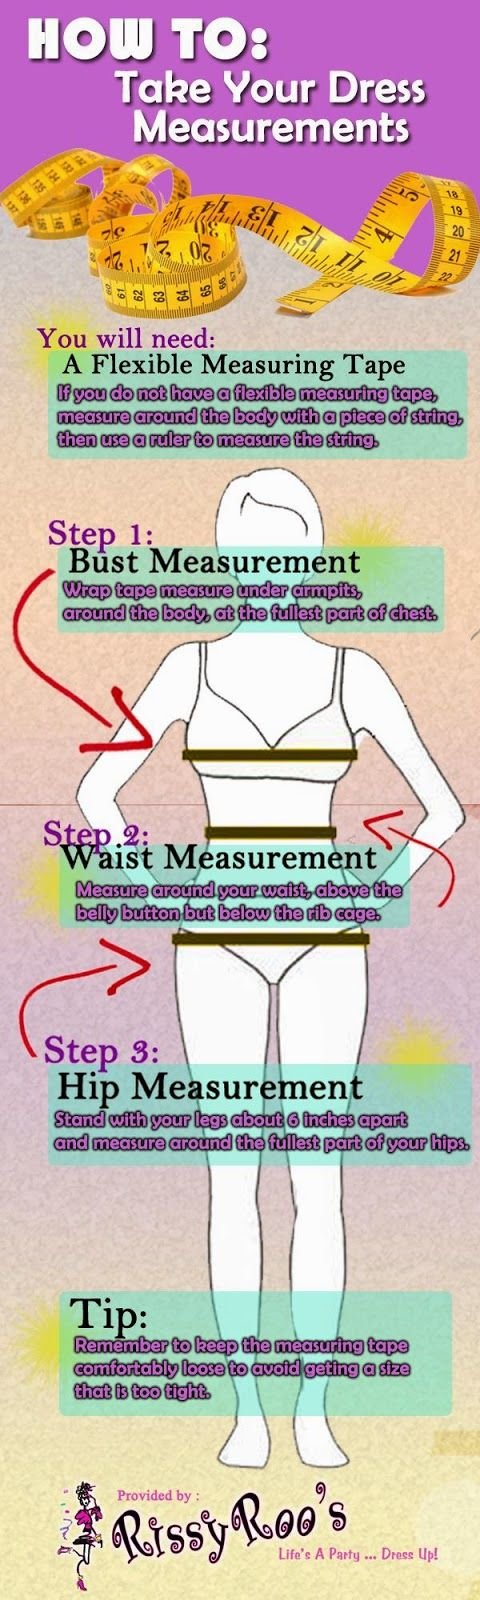 Sexy Crossdresser Gurl: Crossdressing Tips How To Take Your Dress Measurements Fashion Friday